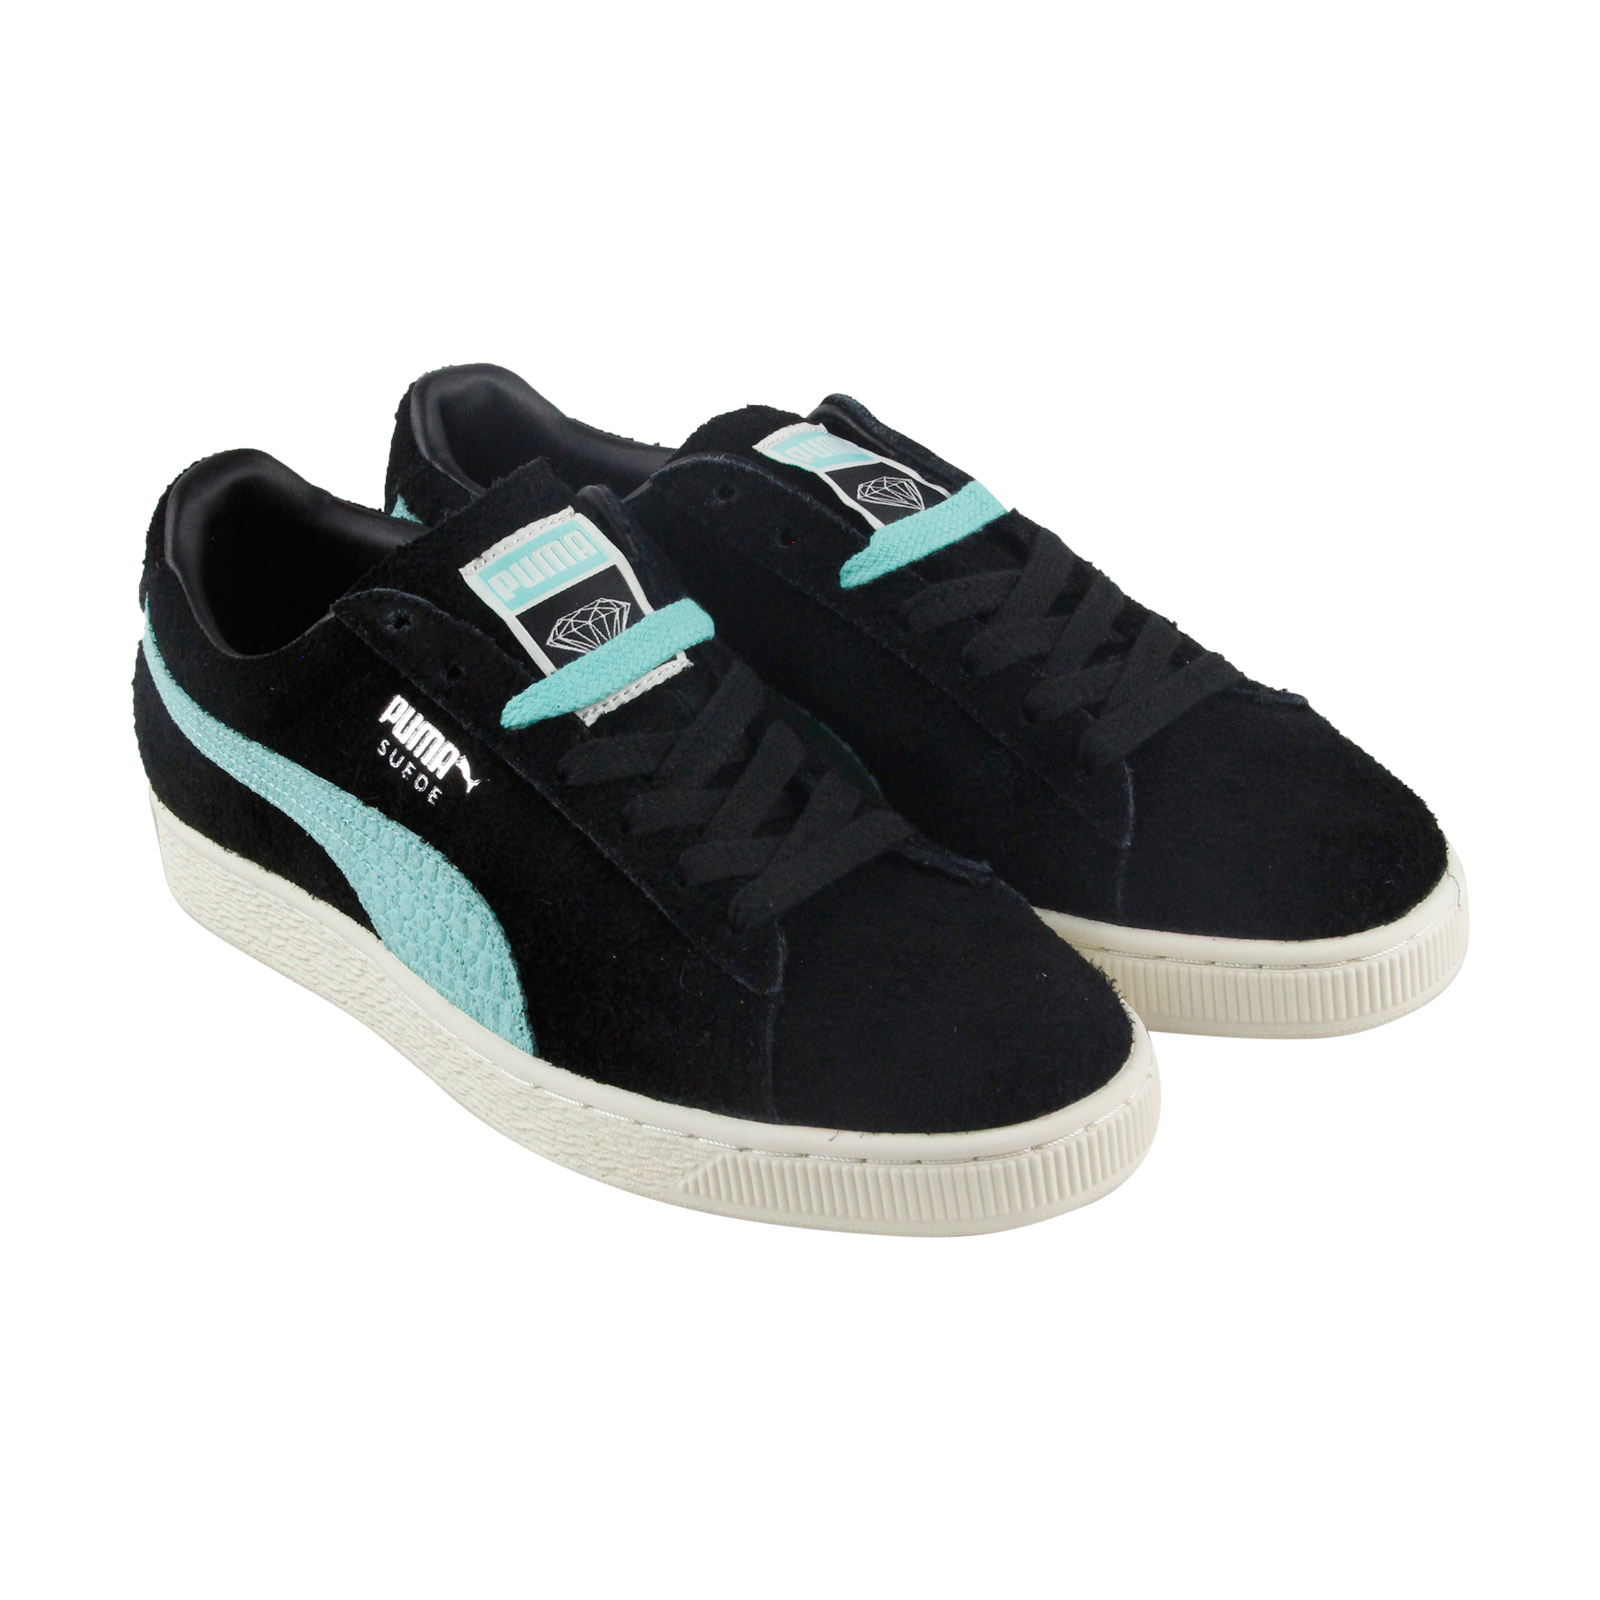 huge discount 24024 8ef58 Details about Puma X Diamond Suede 36565001 Mens Black Casual Lace Up Low  Top Sneakers Shoes